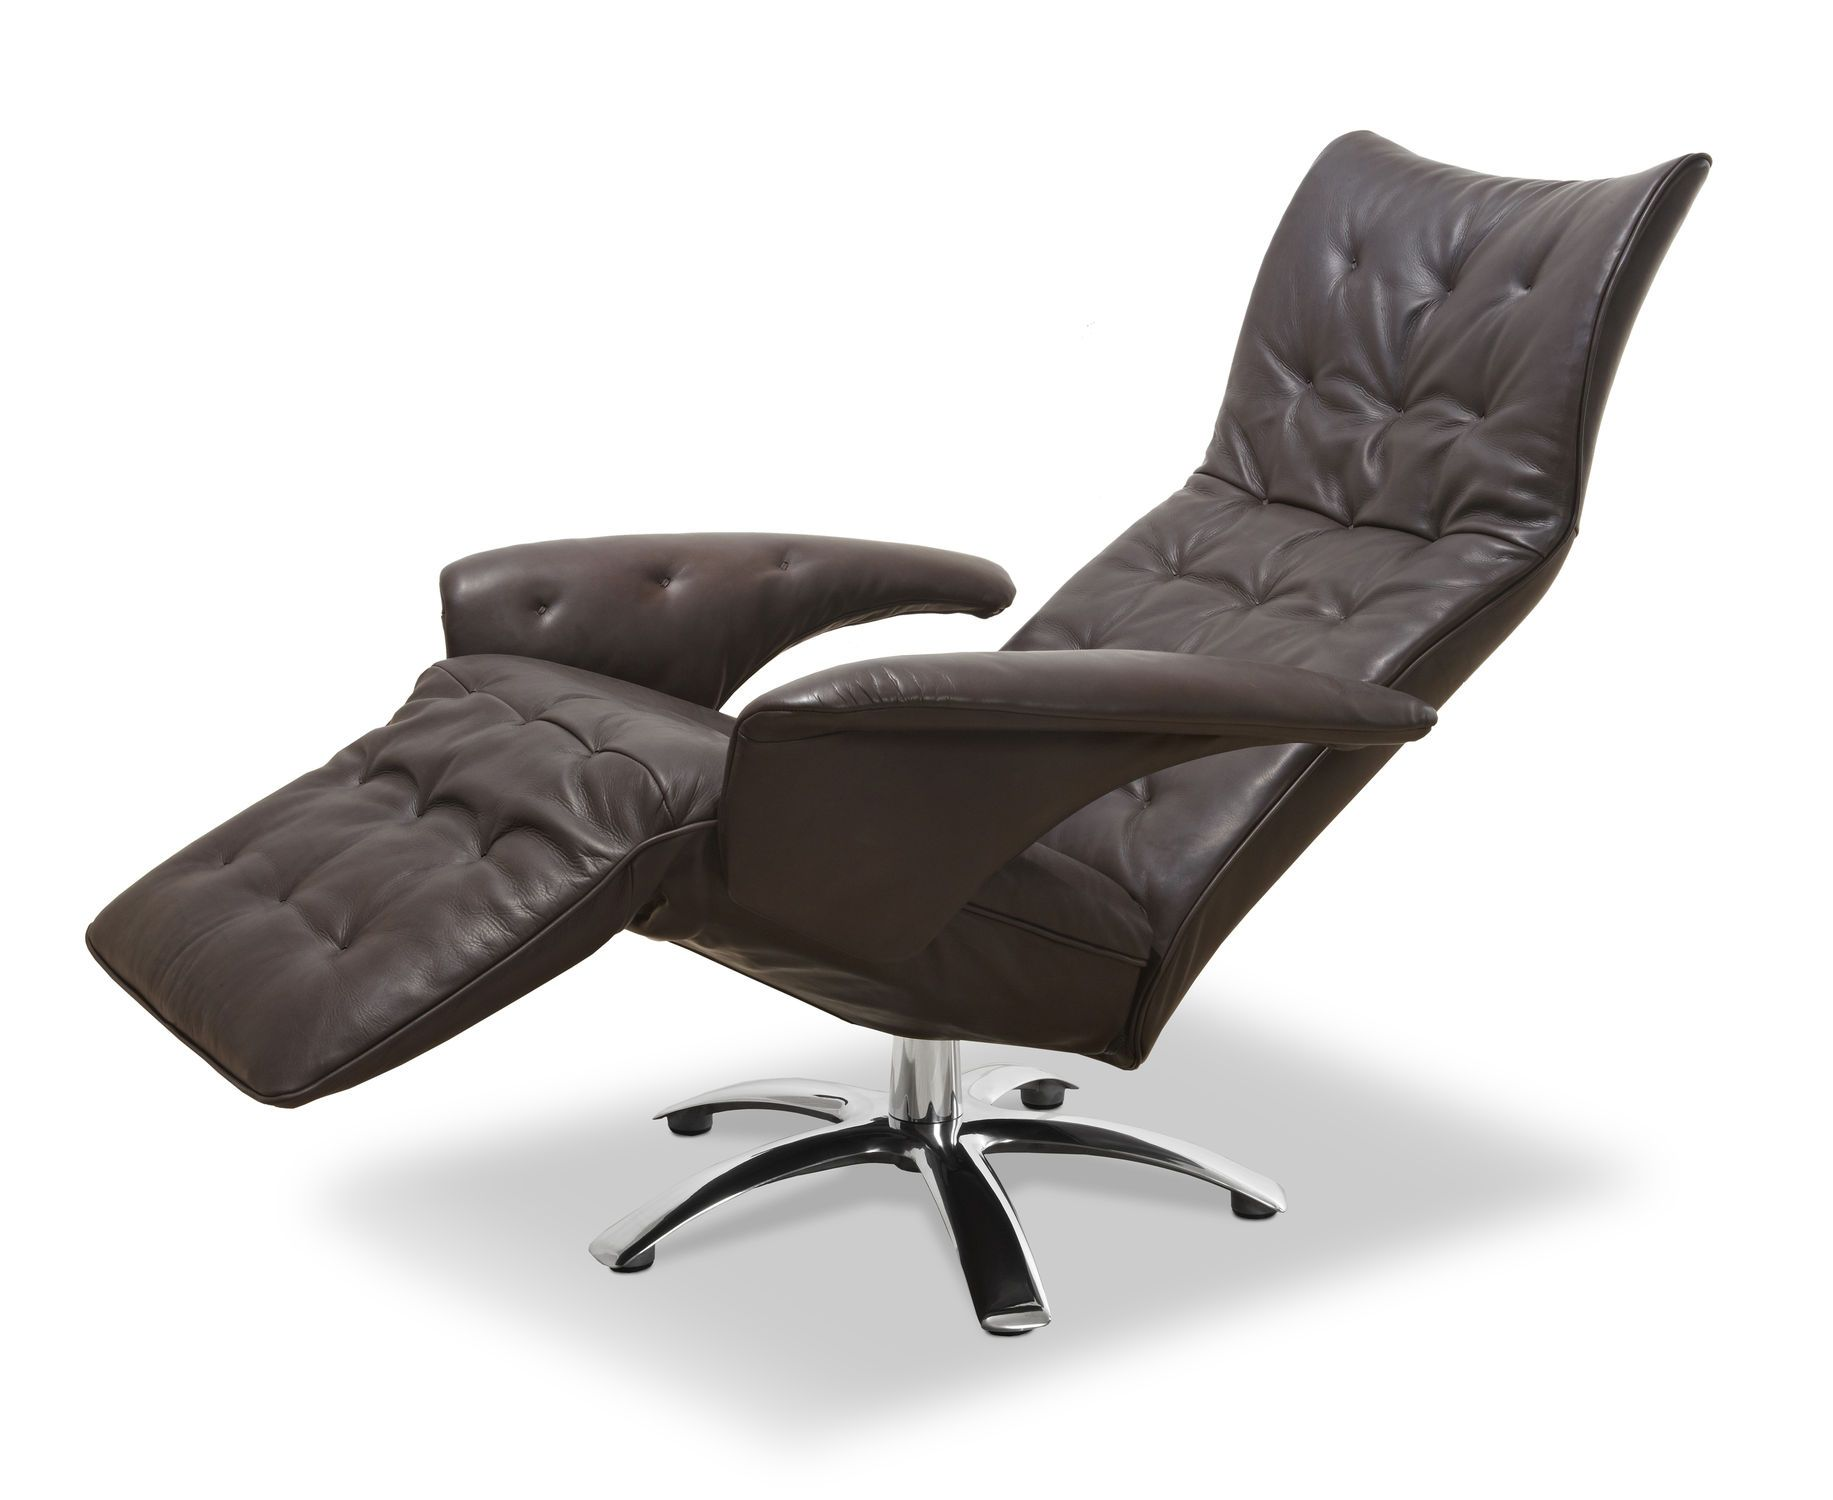 Contemporary Armchair Leather With Footstool Reclining Orea Jr 7770 By Christophe Giraud In 2020 Modern Recliner Modern Recliner Chairs Reclining Office Chair